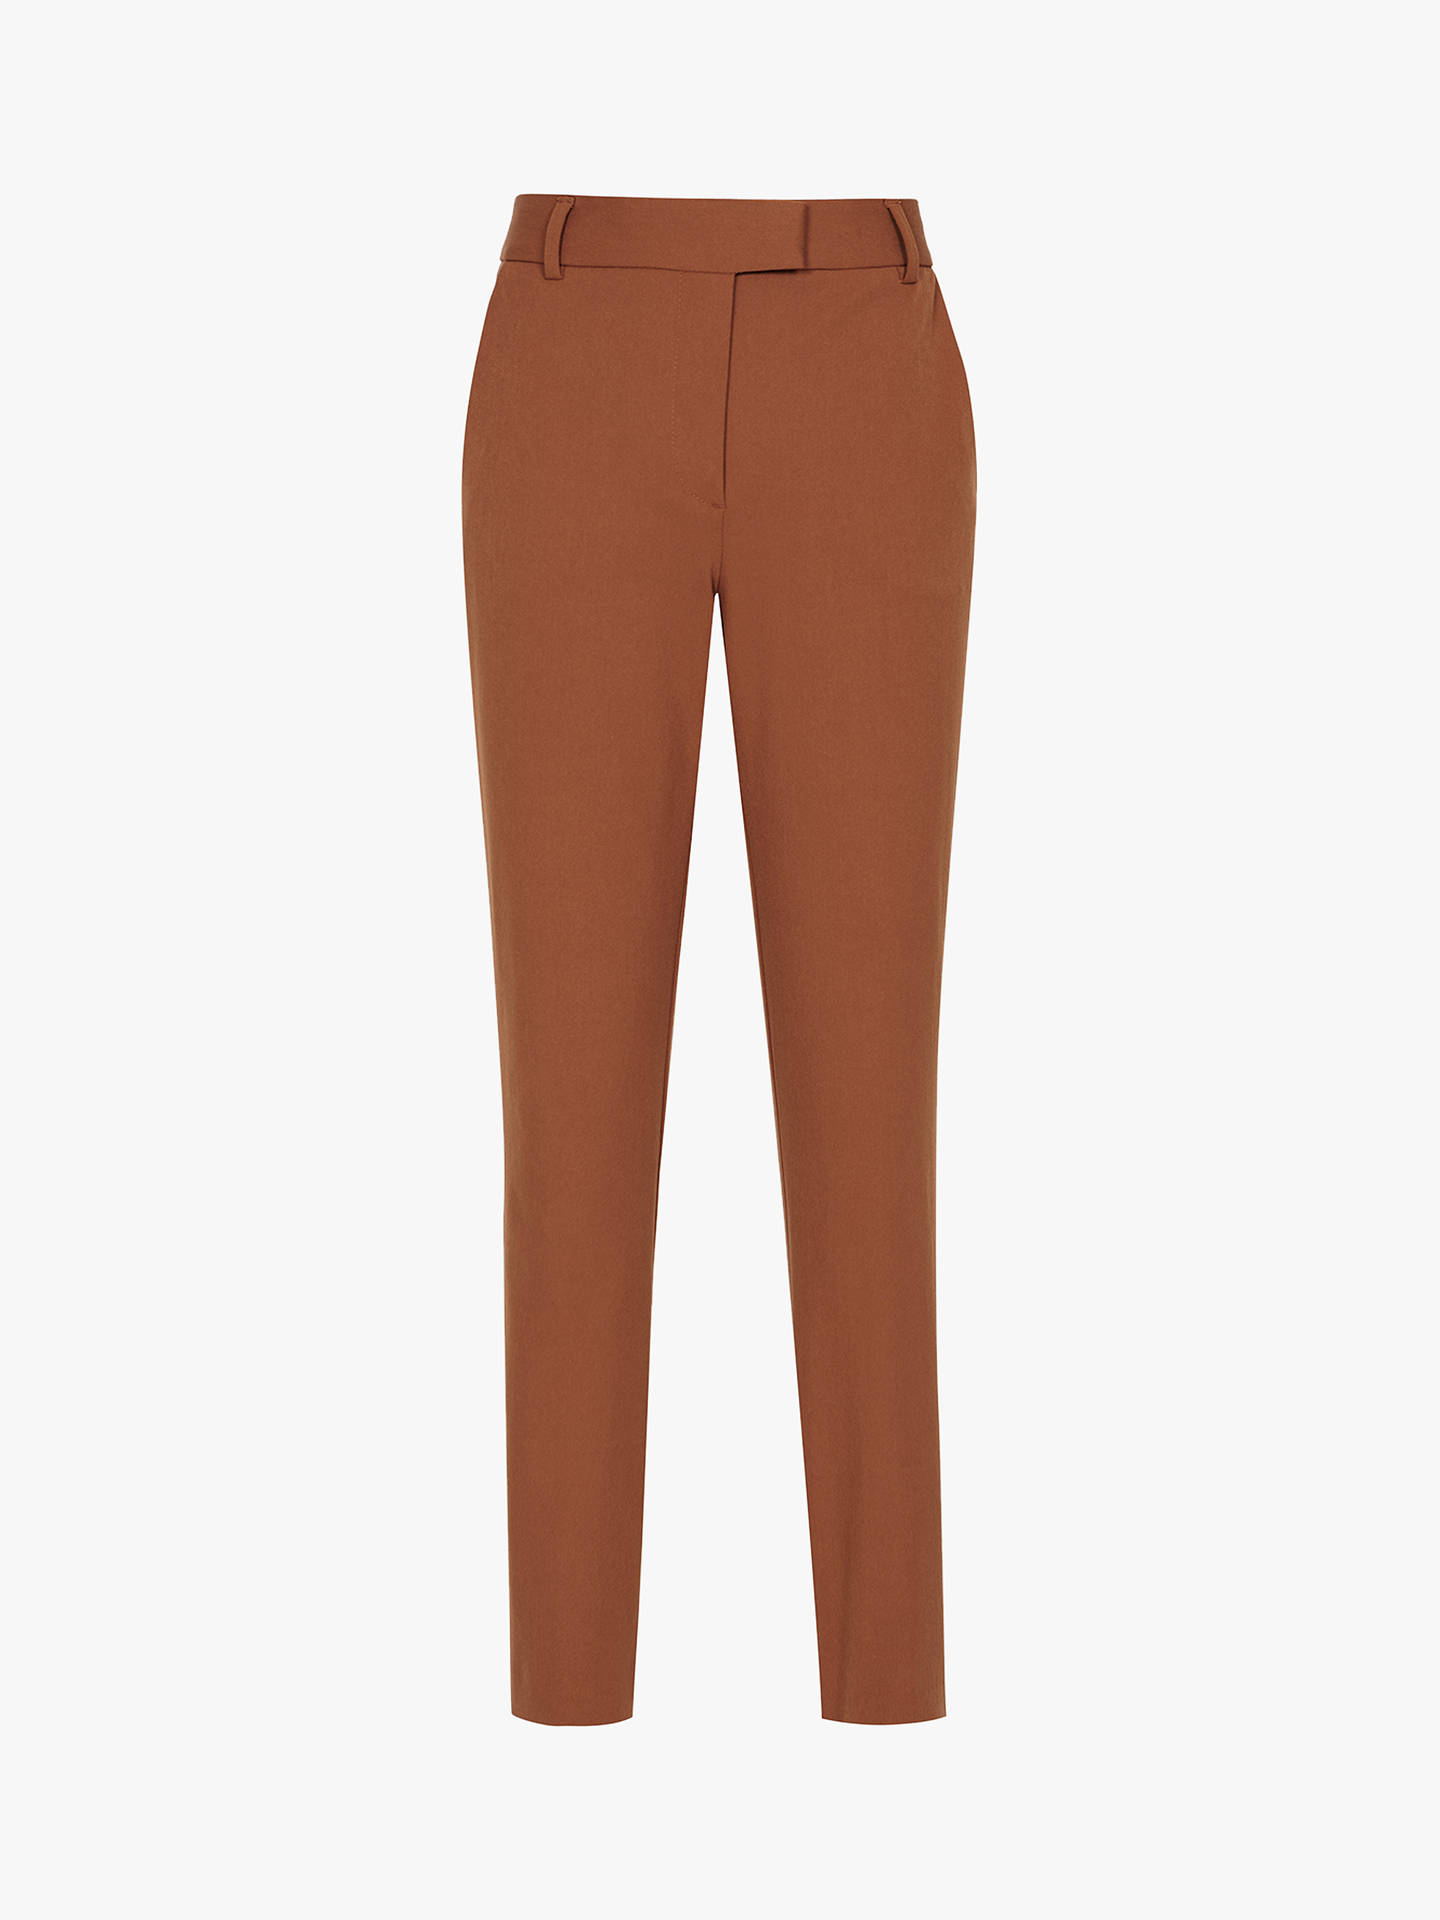 Buy Reiss Joanne Casual Straight Trousers, Rust, 6 Online at johnlewis.com